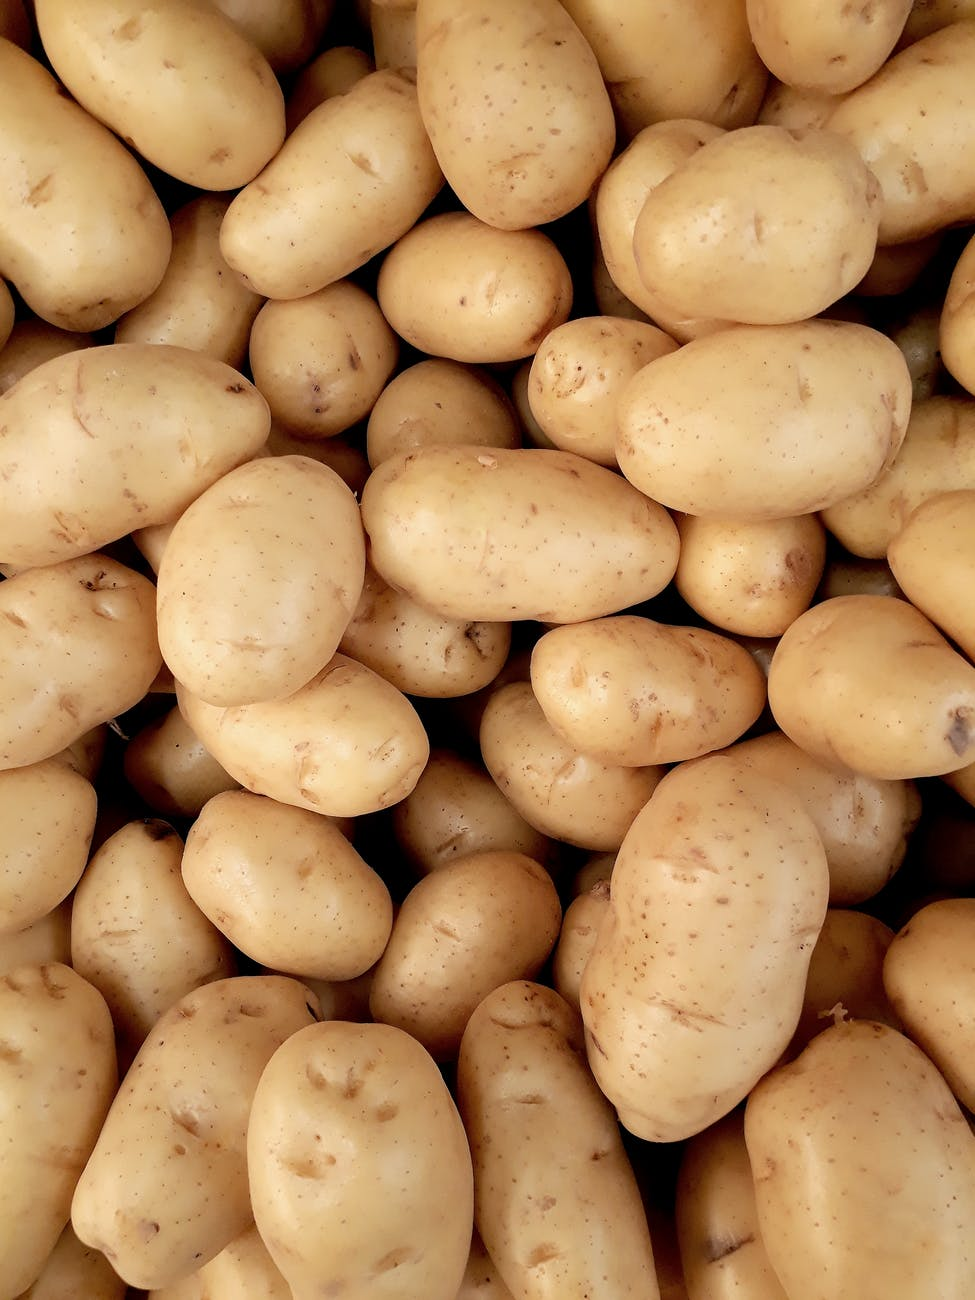 photo of pile of potatoes